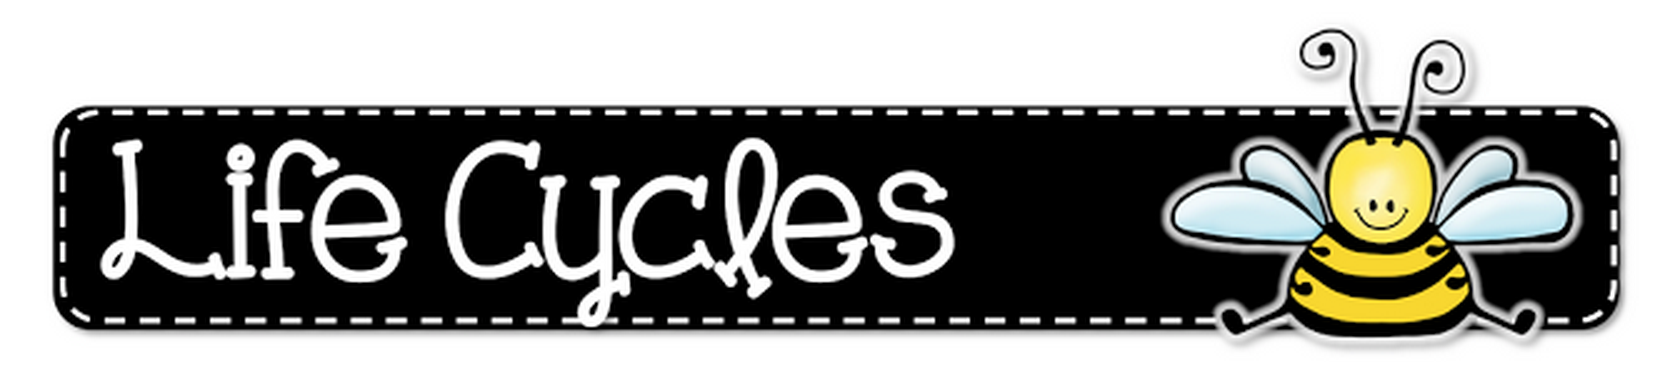 Header Clipart Lifecycles